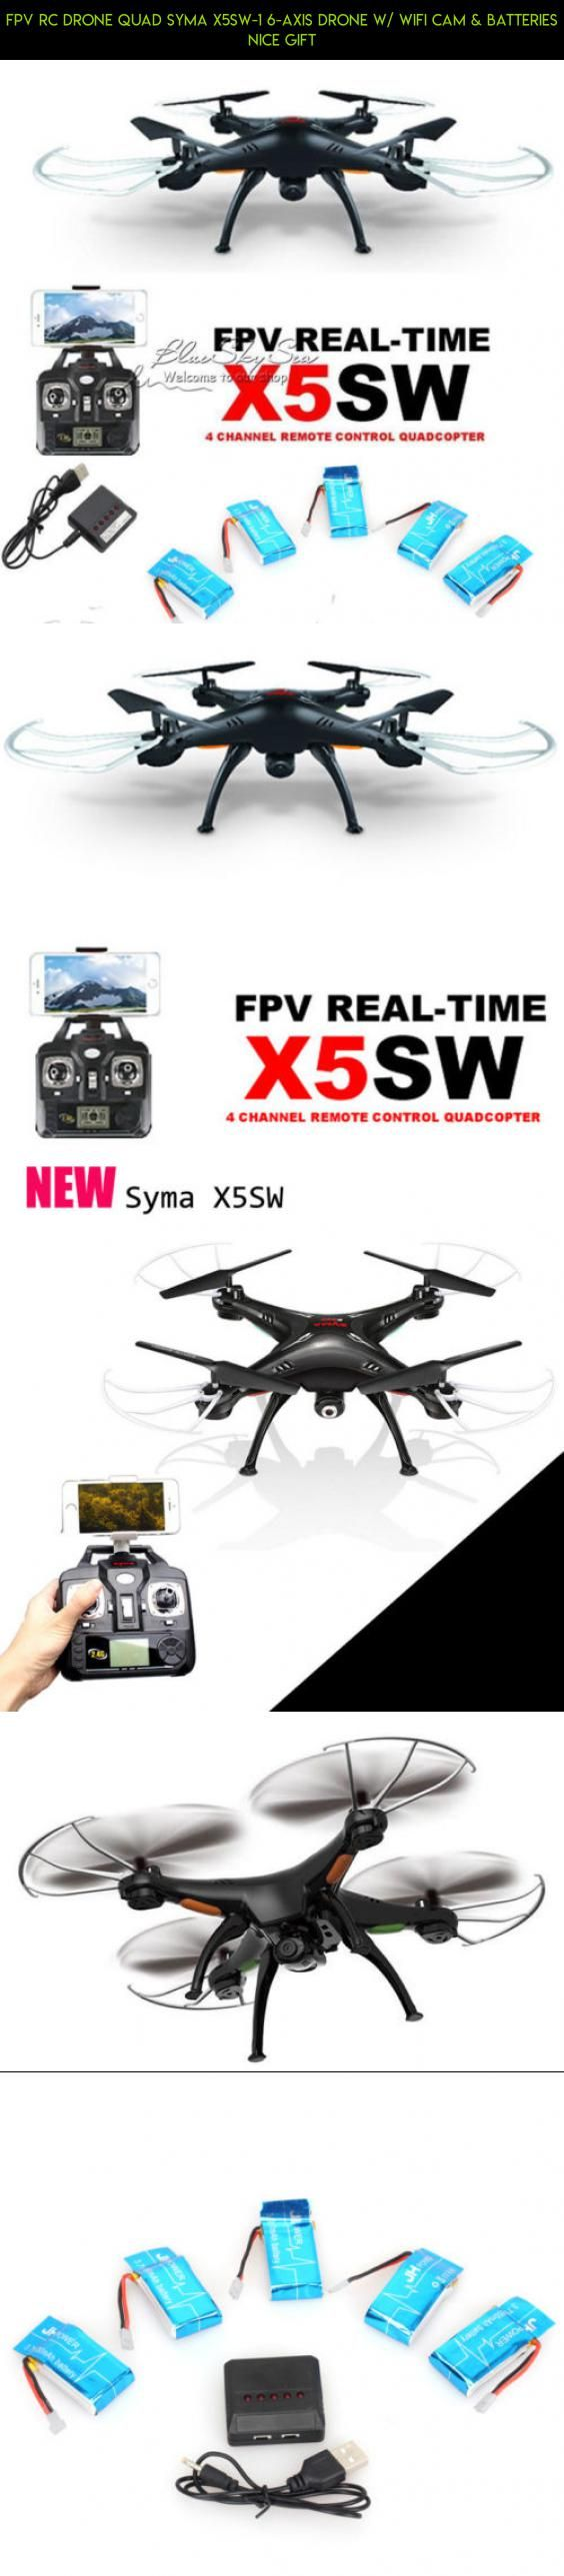 FPV RC Drone Quad Syma X5SW-1 6-Axis Drone w/ Wifi Cam & batteries nice gift #kit #quad #drone #parts #shopping #plans #camera #fpv #gadgets #tech #technology #racing #products #syma